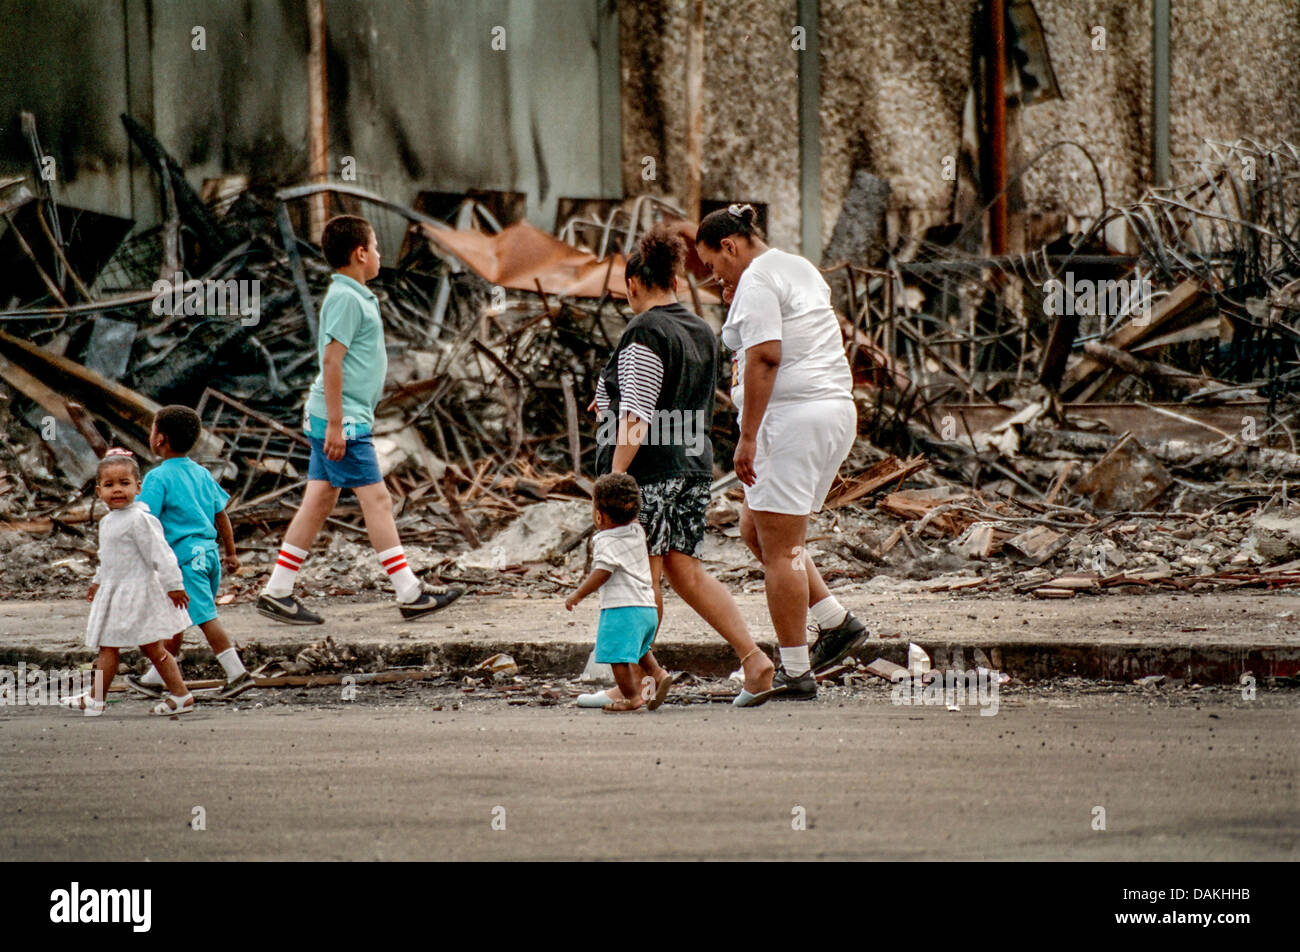 Hispanic locals walk past the ruins of a fire damaged shop in South Central Los Angeles after the 1992 Rodney King - Stock Image